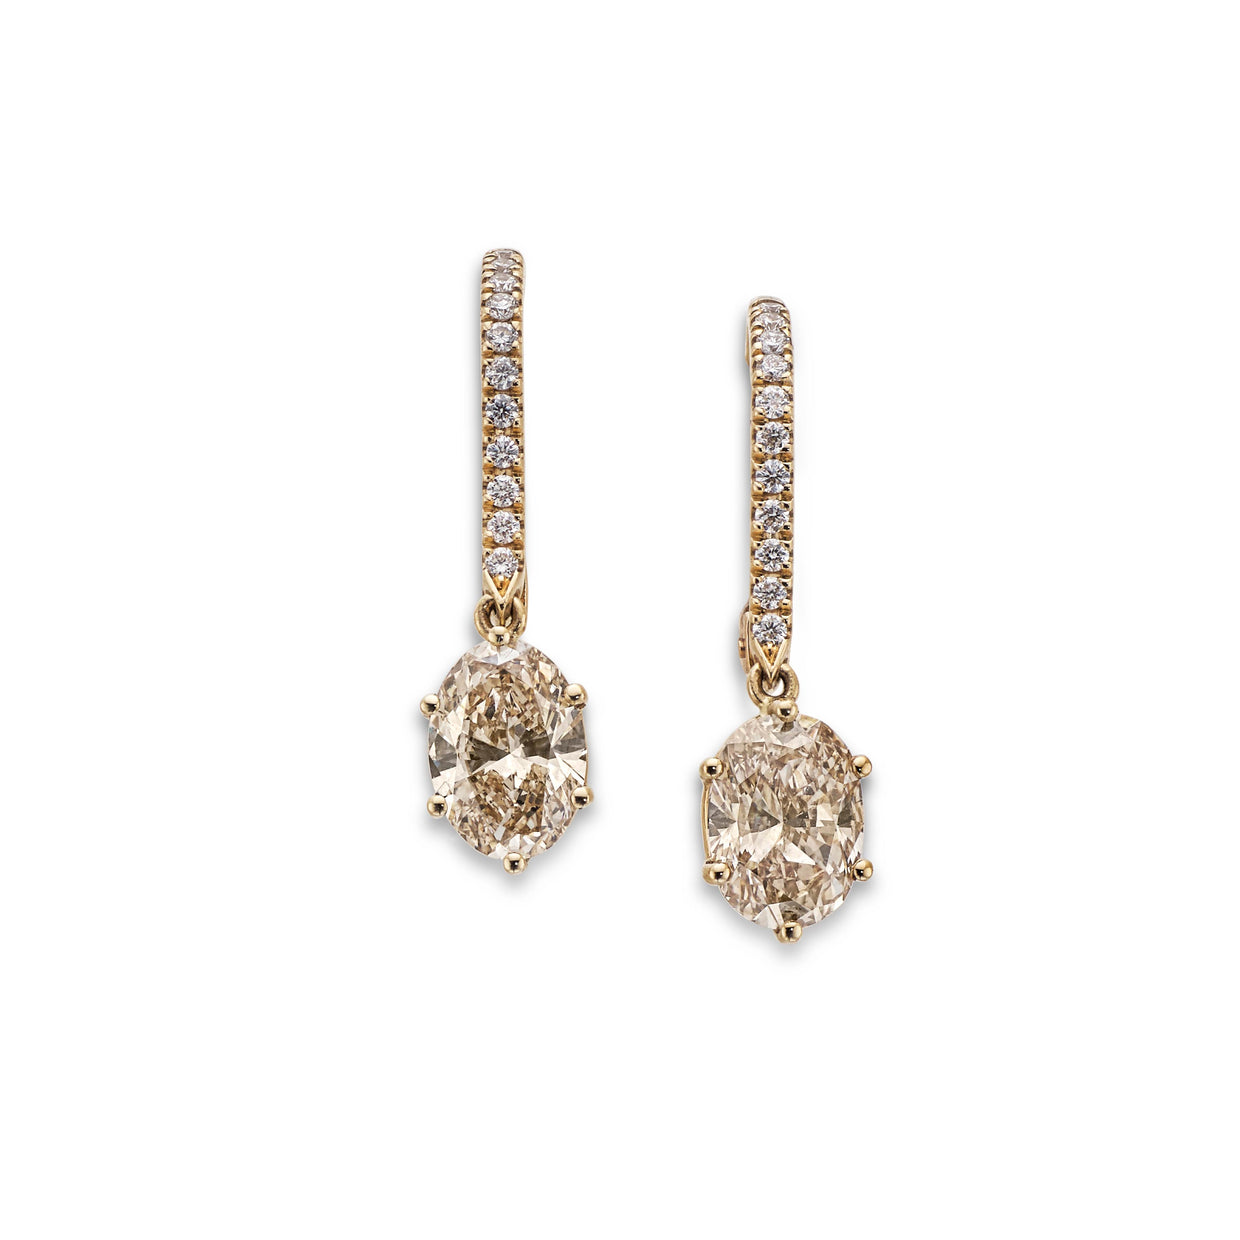 Oval Cut Diamond Drop Earrings in 18ct Rose Gold-Hamilton & Inches